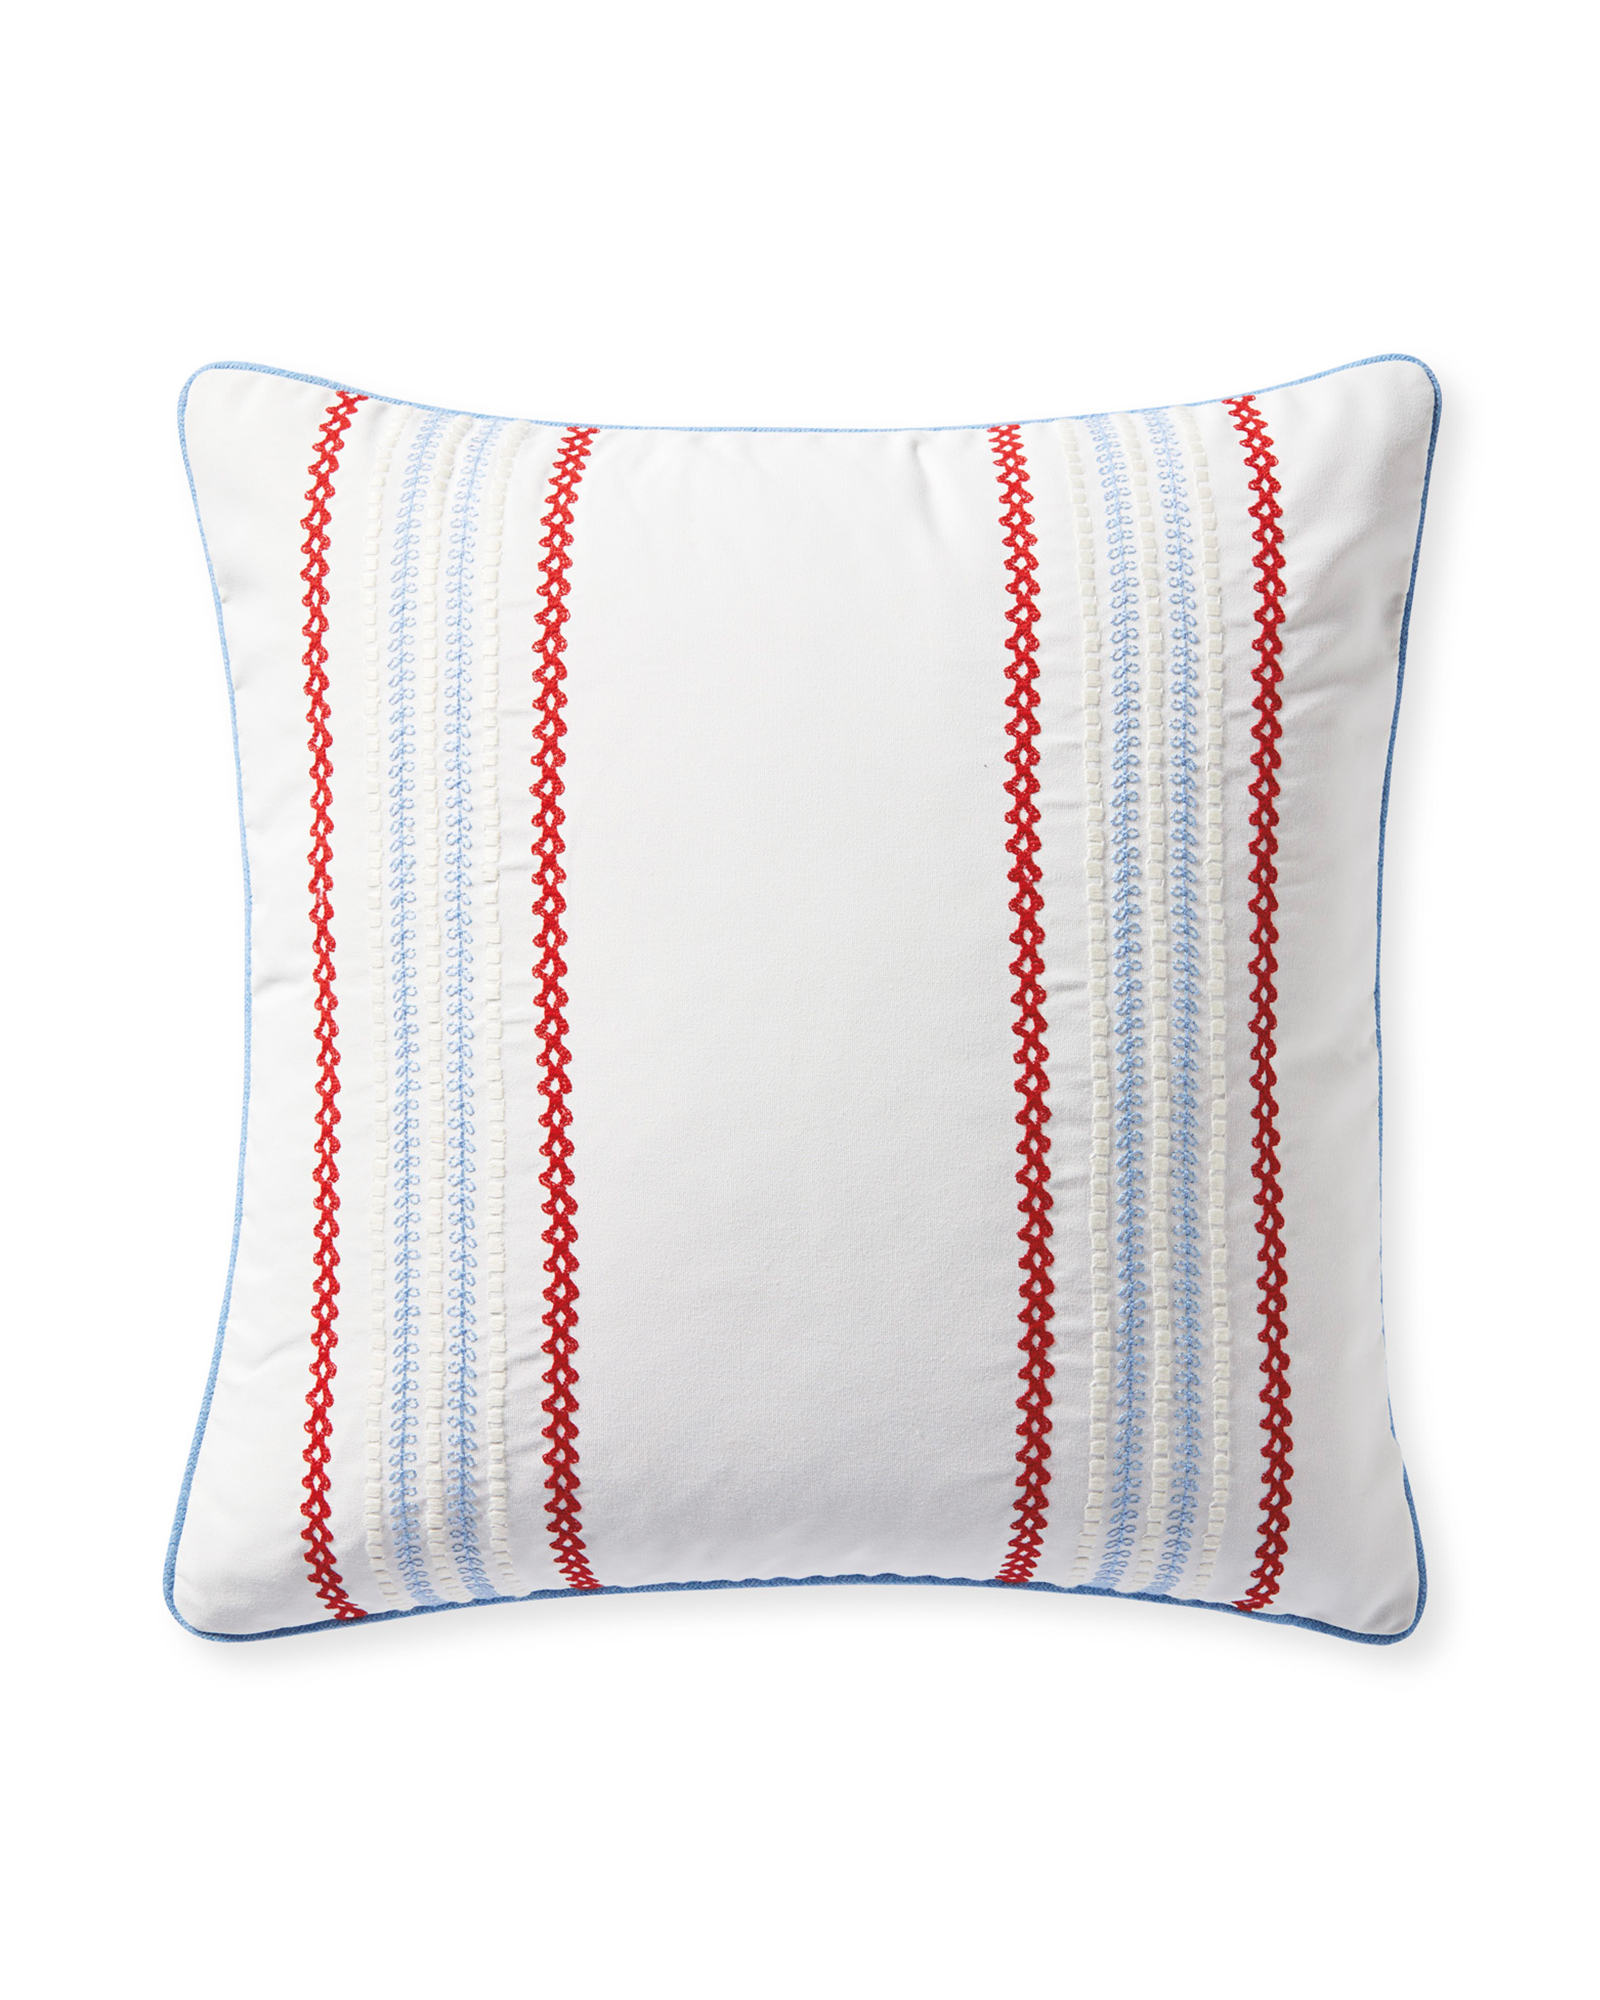 Sunbrella® Aveiro Pillow Cover, Poppy/Coastal